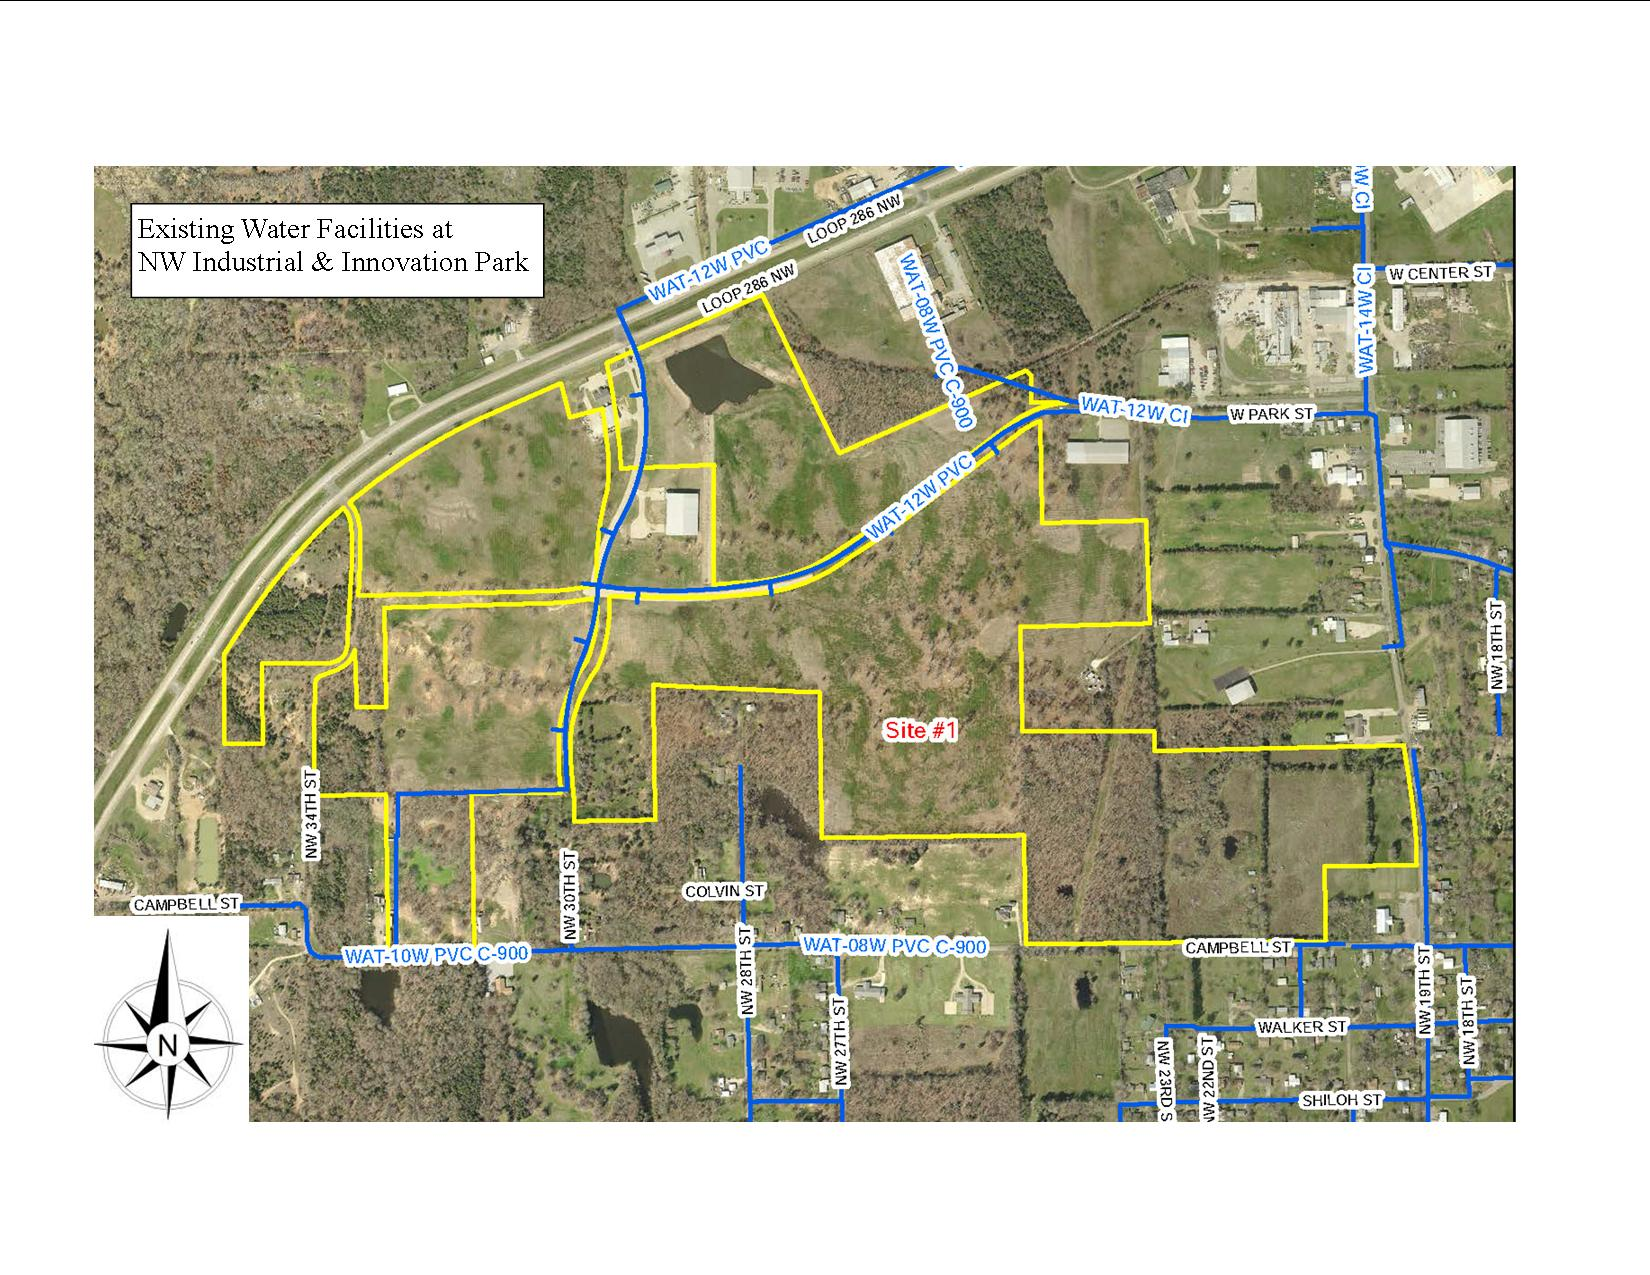 Existing Water map for NW Industrial Park